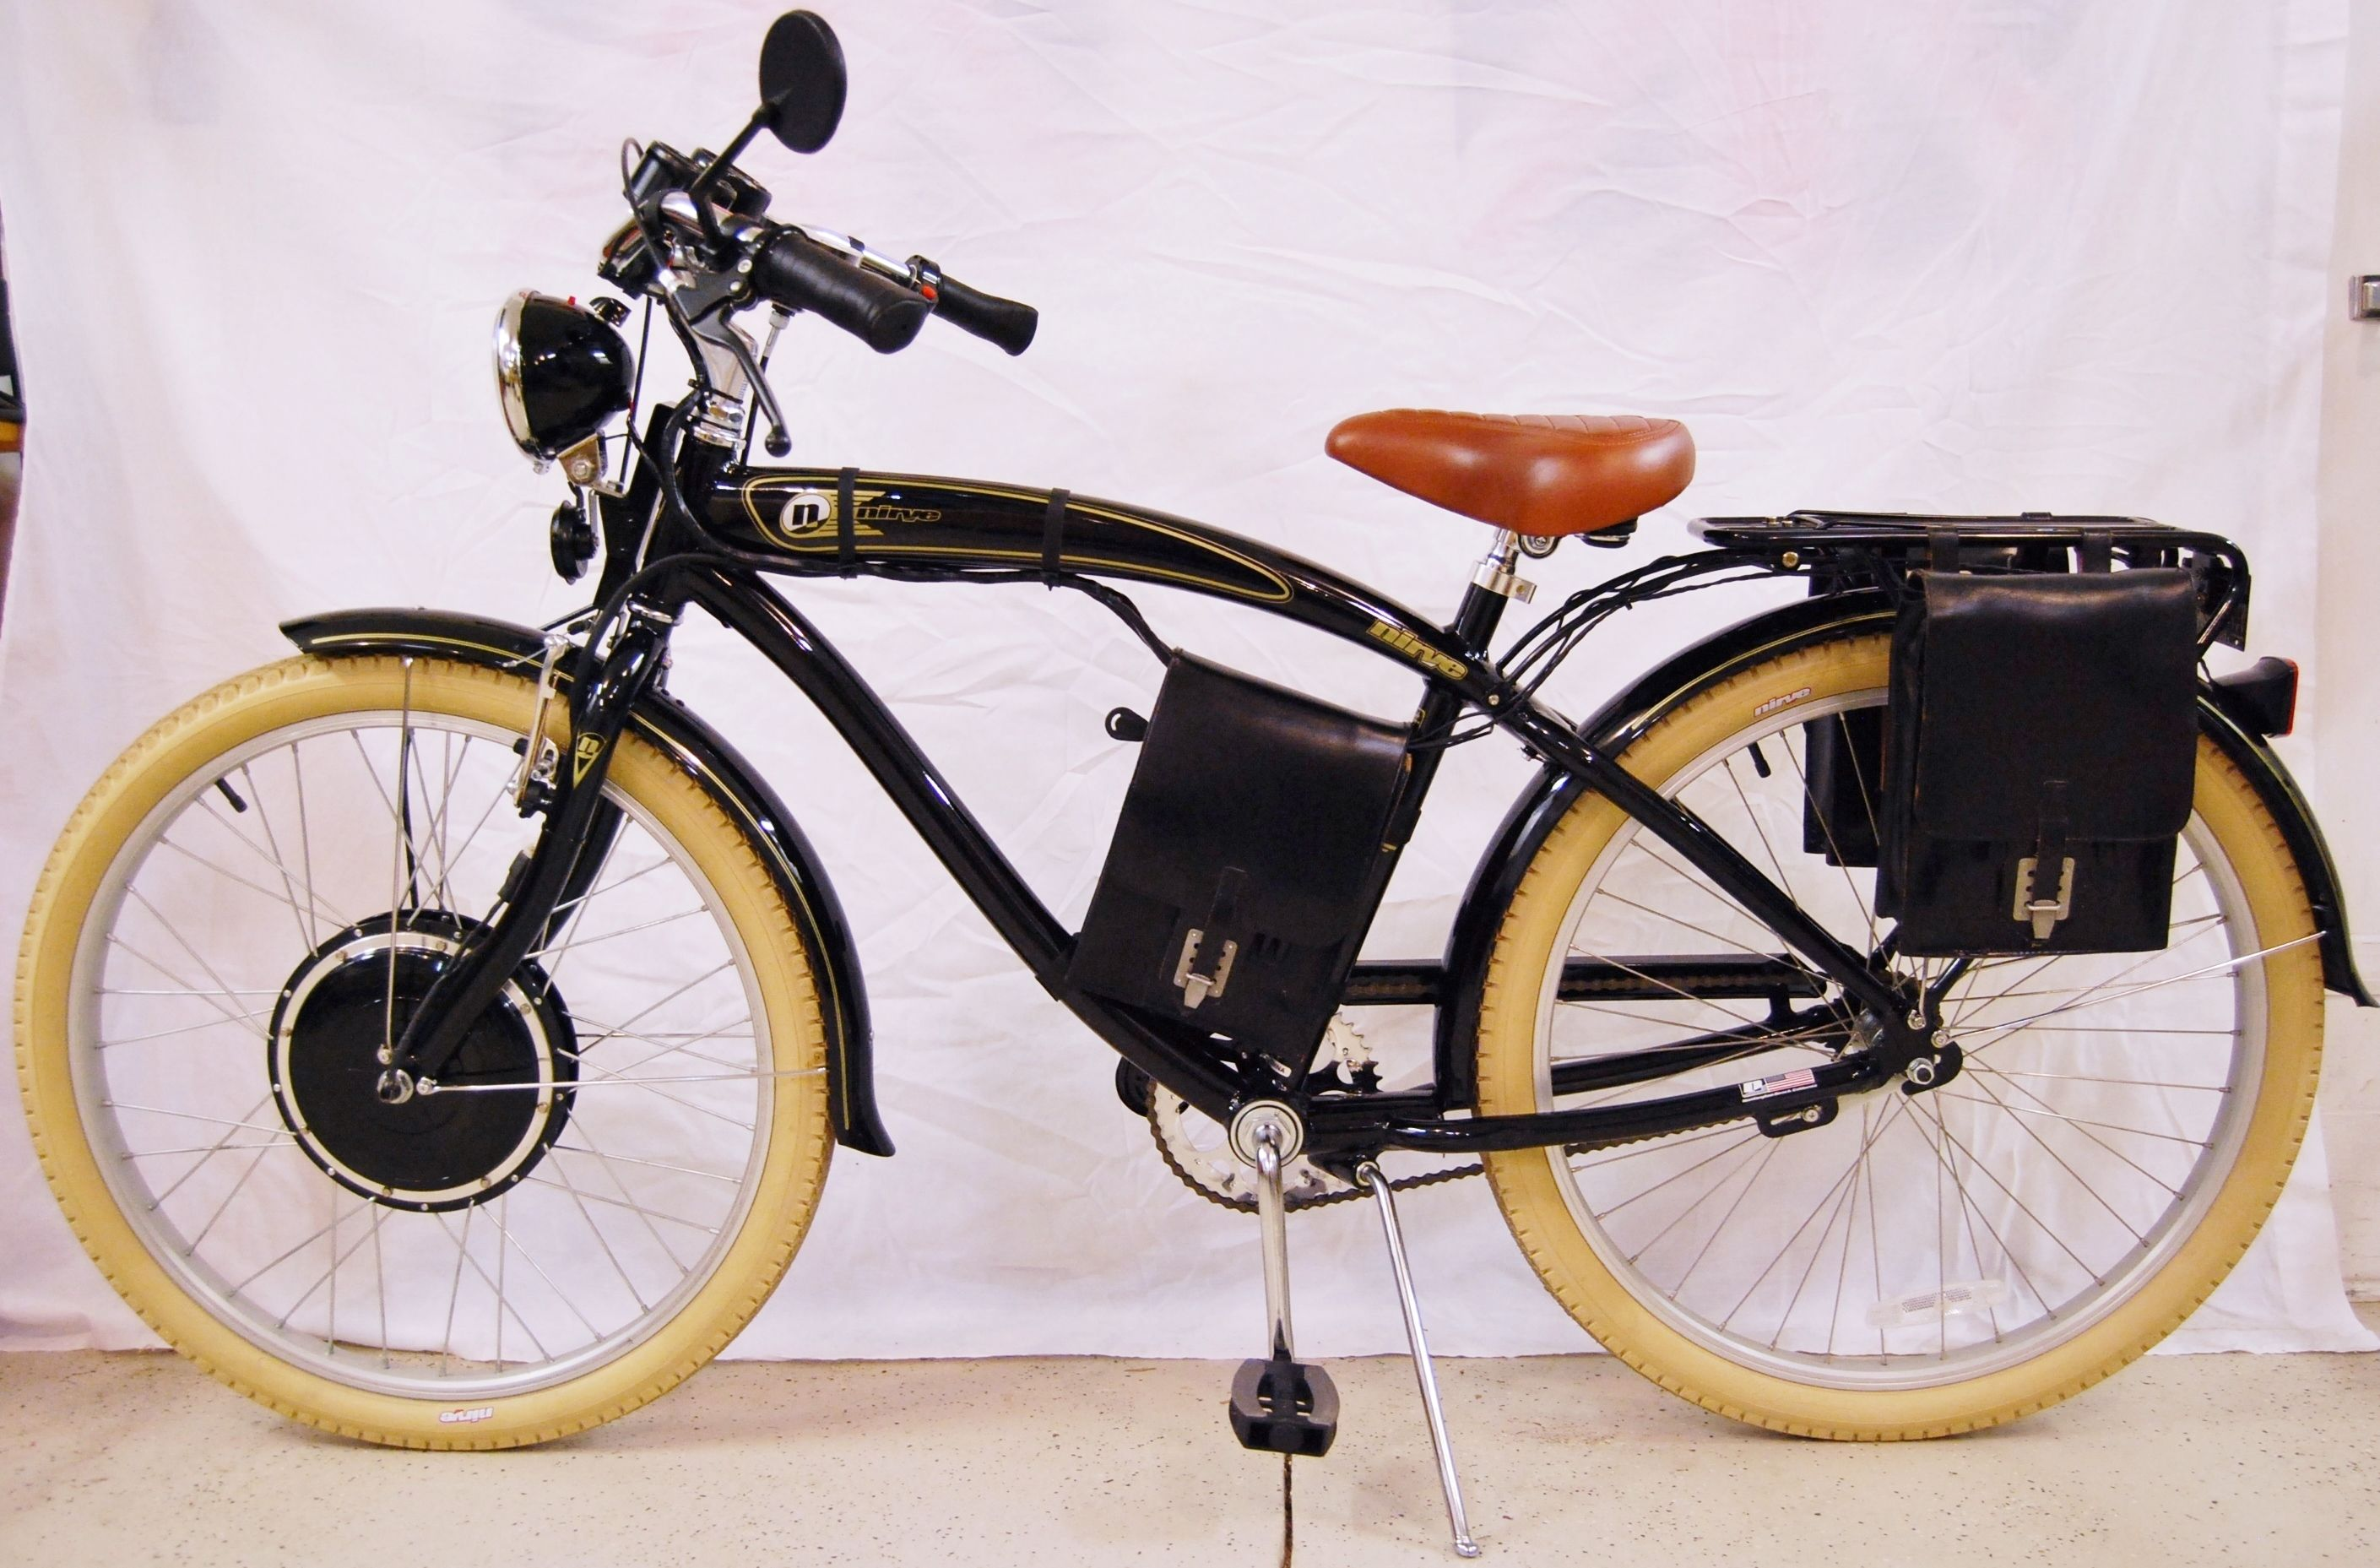 Modified Nirve Classic With 48 Volt 750 Watt Electric Motor Ebike Bike Bicycle